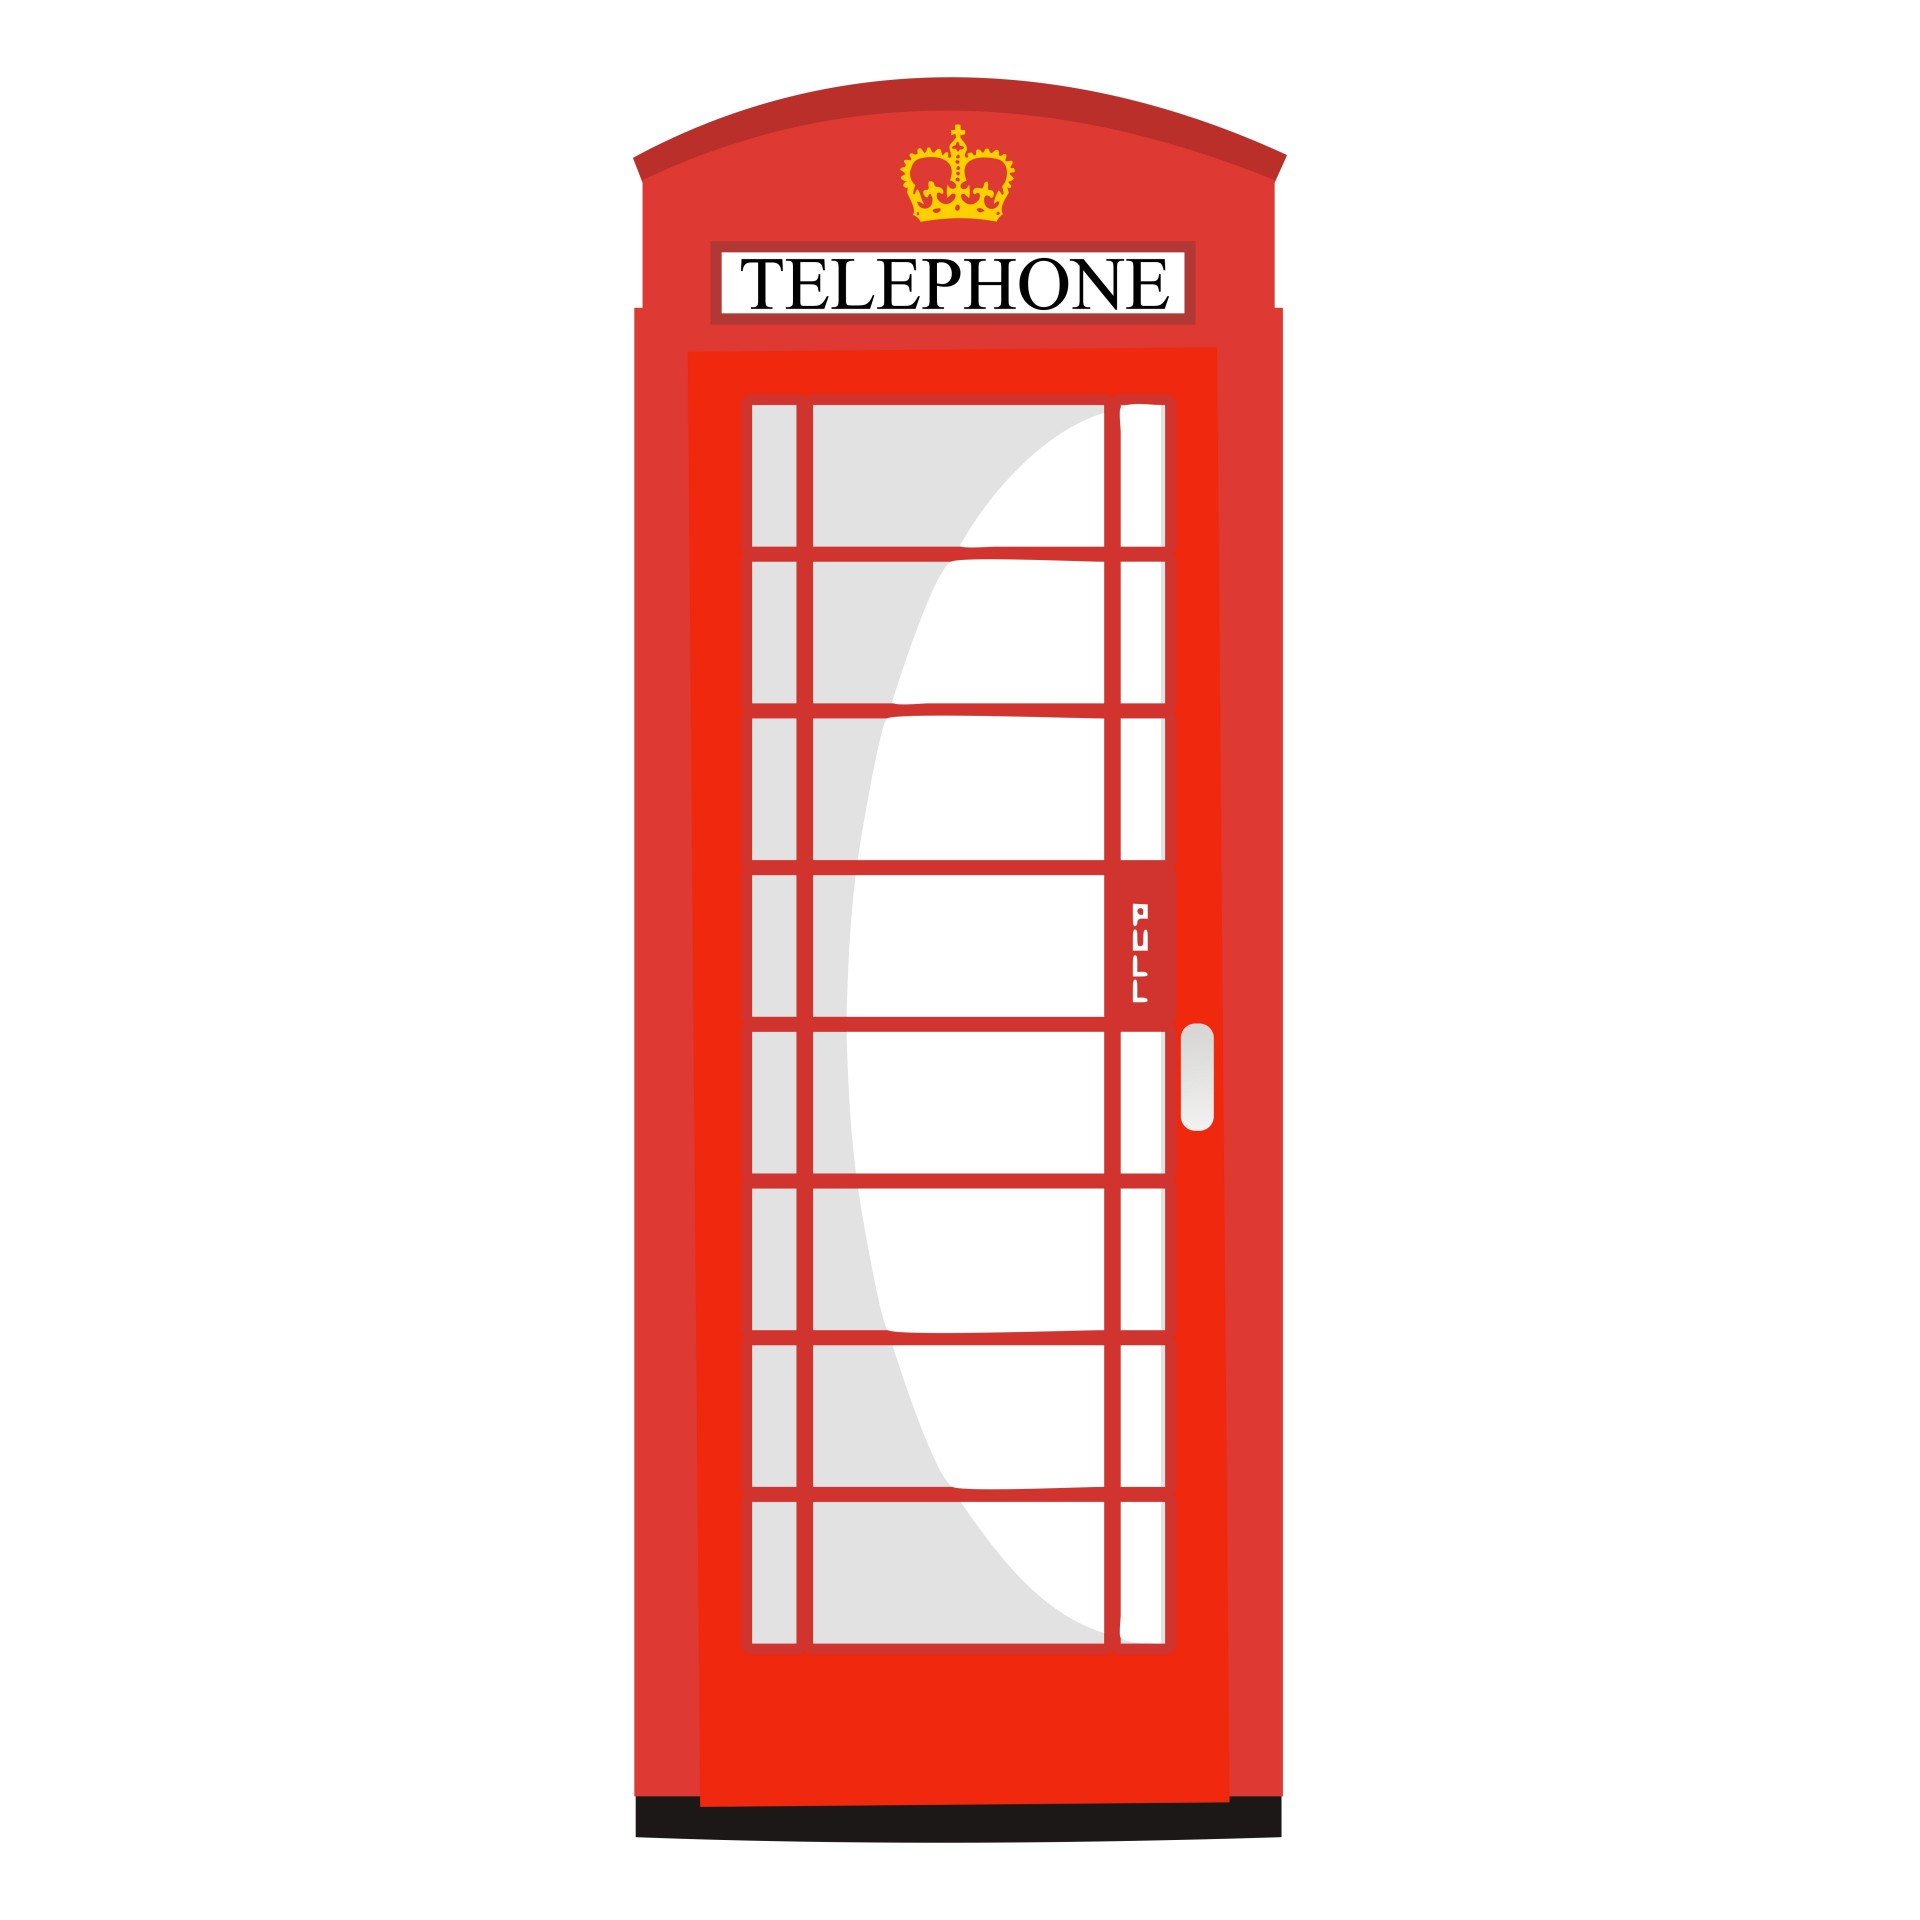 Telephone box clipart 20 free Cliparts | Download images ...